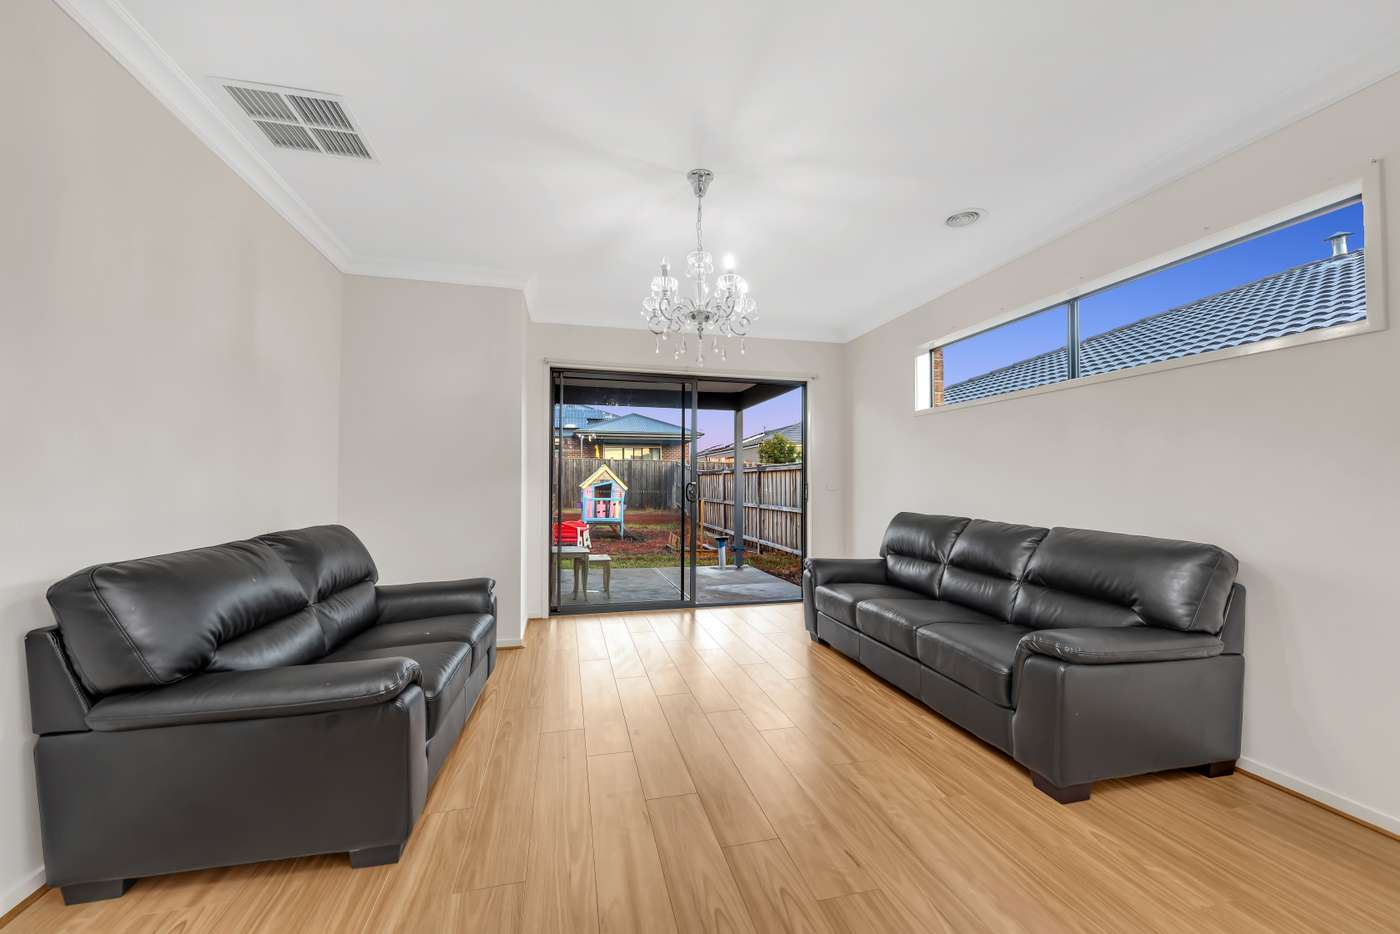 Sixth view of Homely house listing, 38 Mackenzie Drive, Wollert VIC 3750